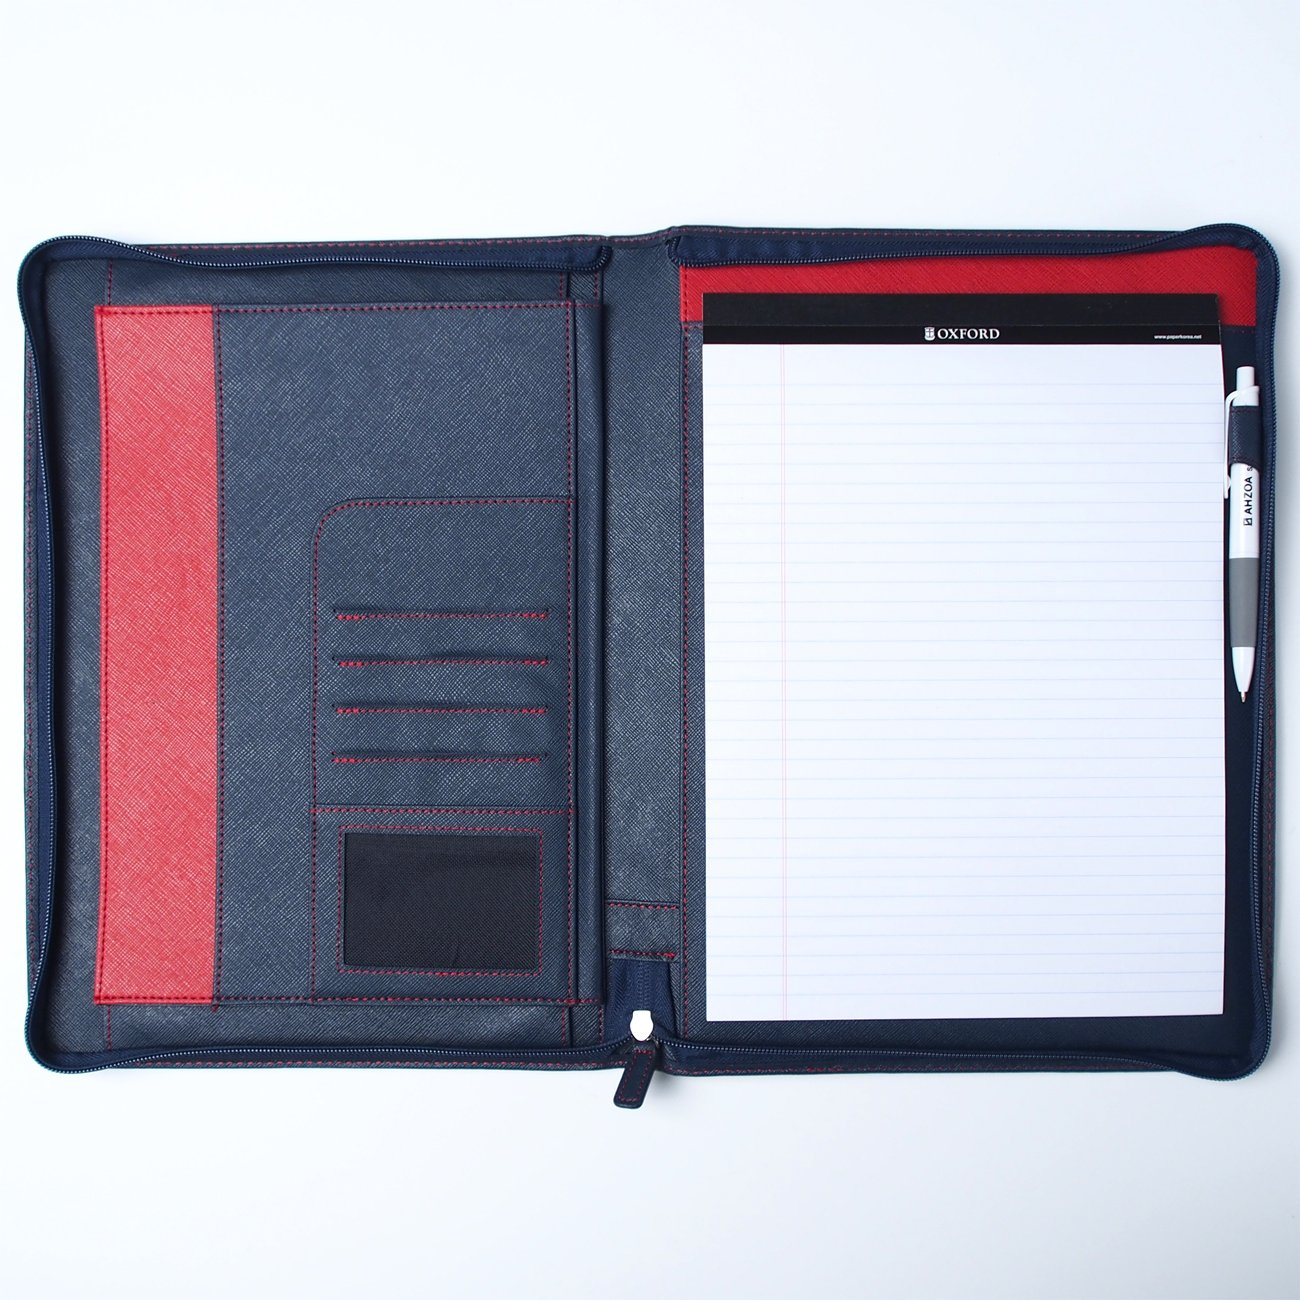 AHZOA 8 Pockets A4 Size Memo Padfolio S5 with Mechanical Pencil, Including 8.27 X 11.7 inch Legal Writing Pad, Zip-up Style, Synthetic Leather Handmade 10.24 X 13.78 inch Notepad Clipboard (Navy)